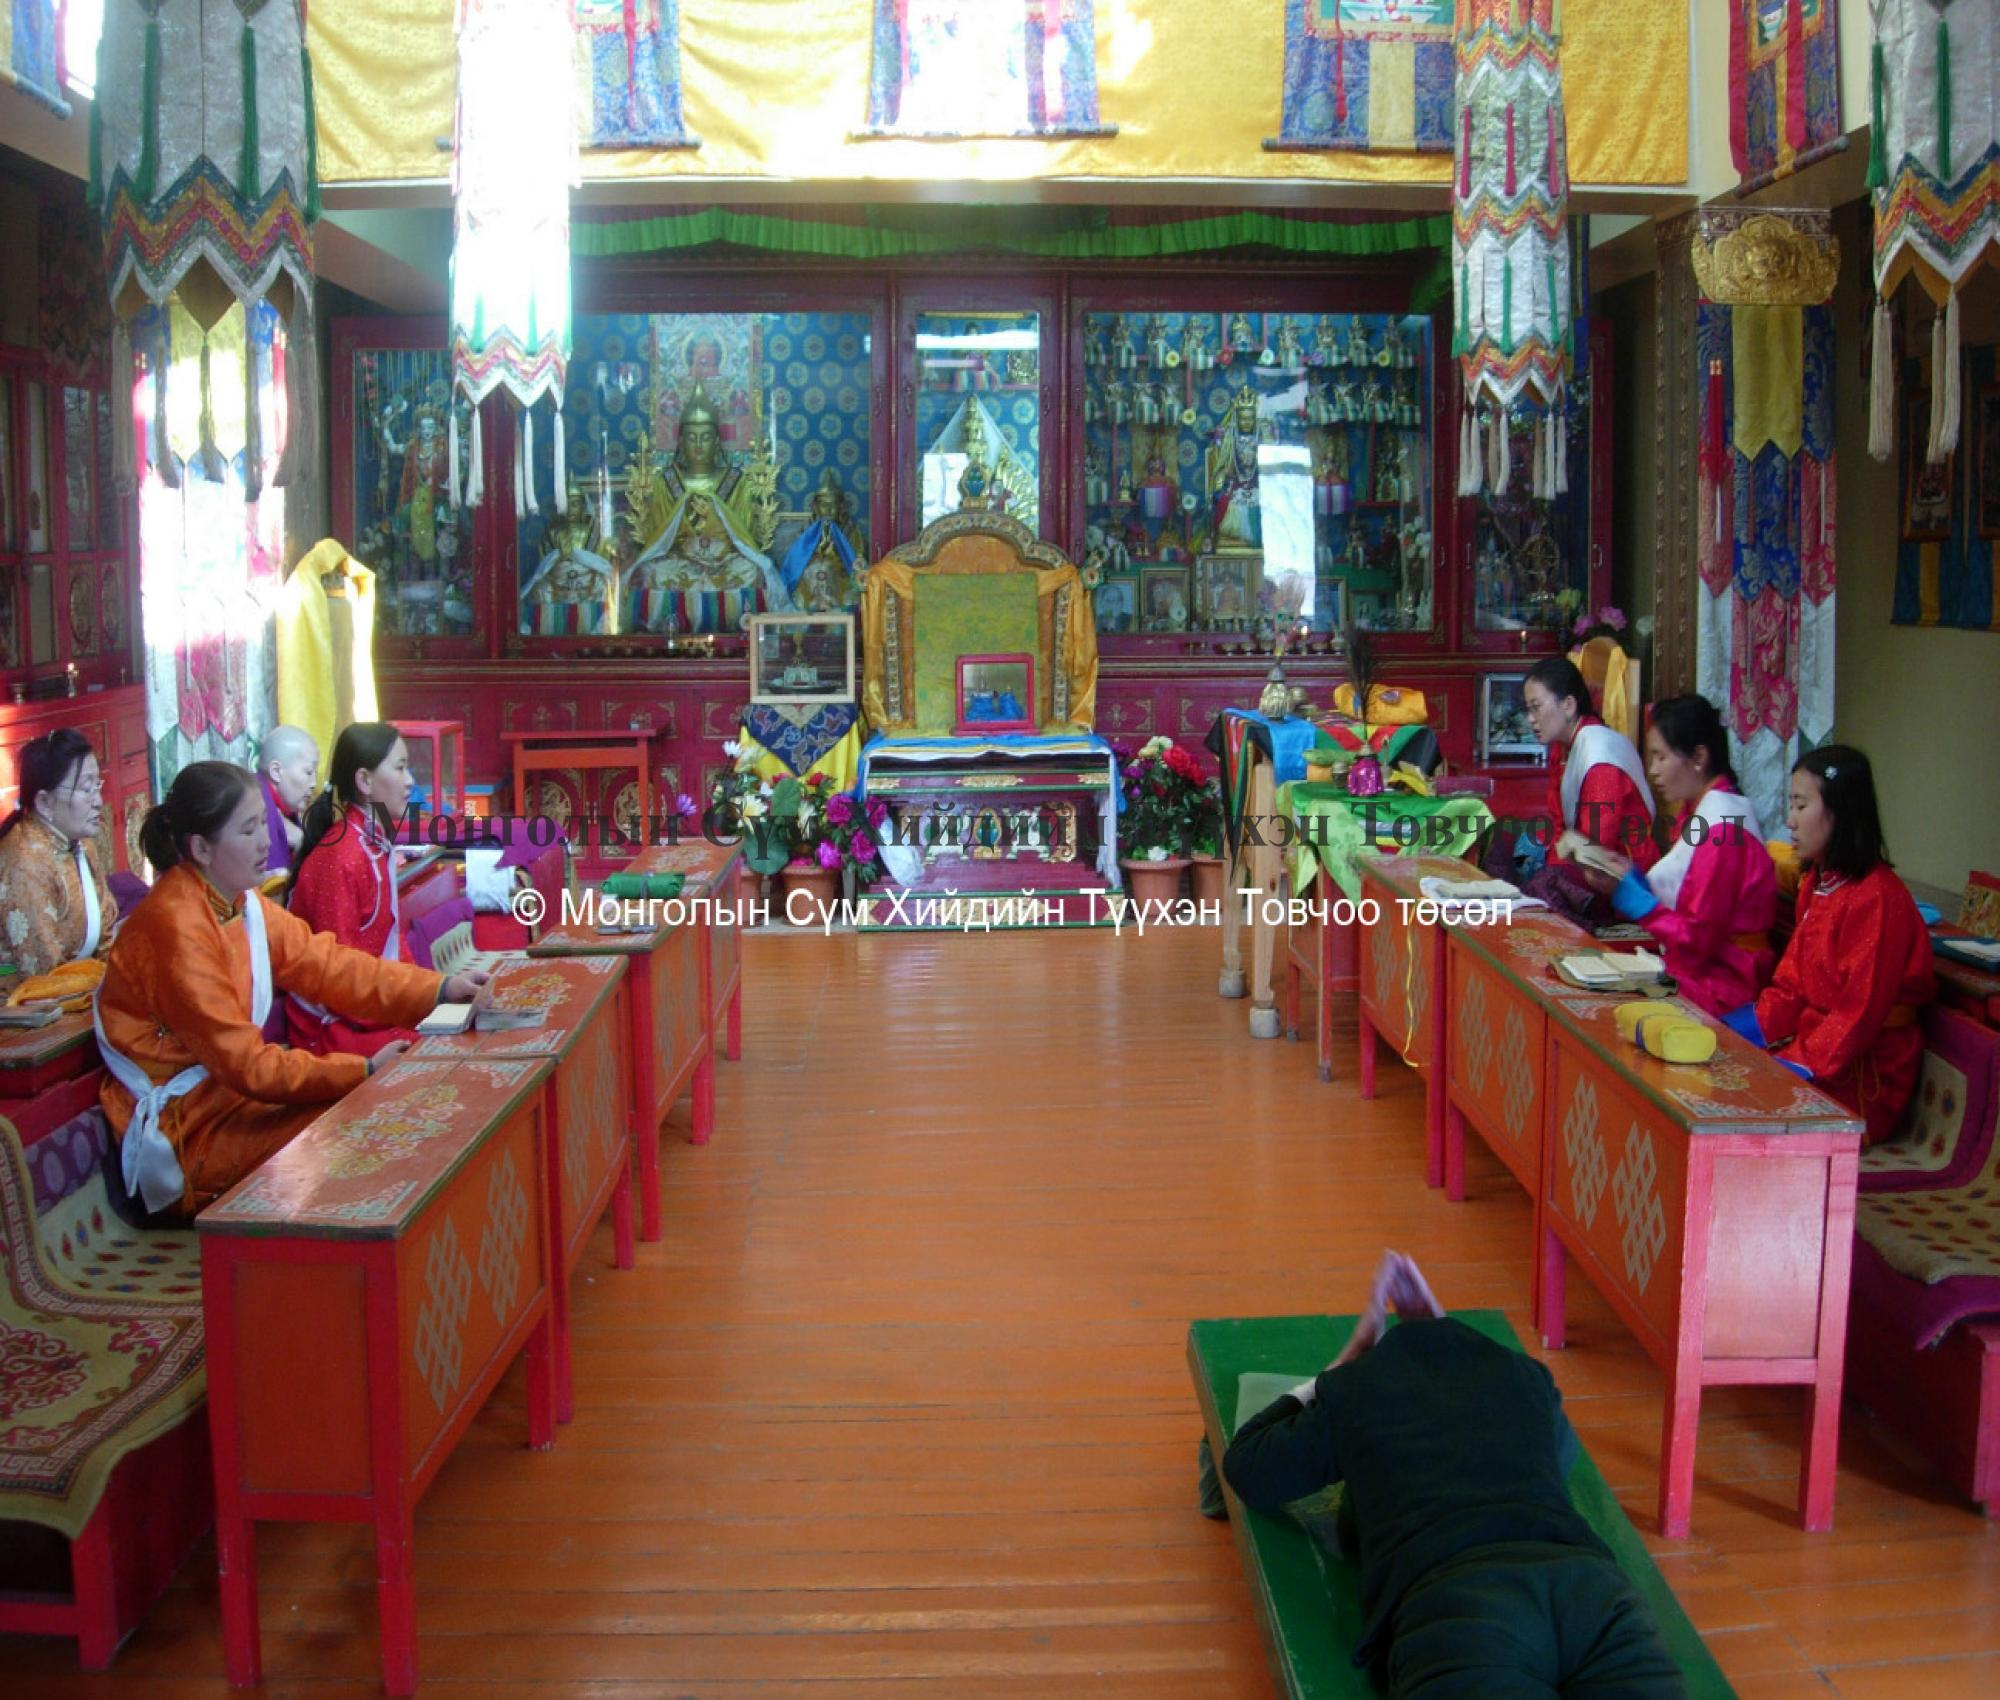 Inside the temple prayer room